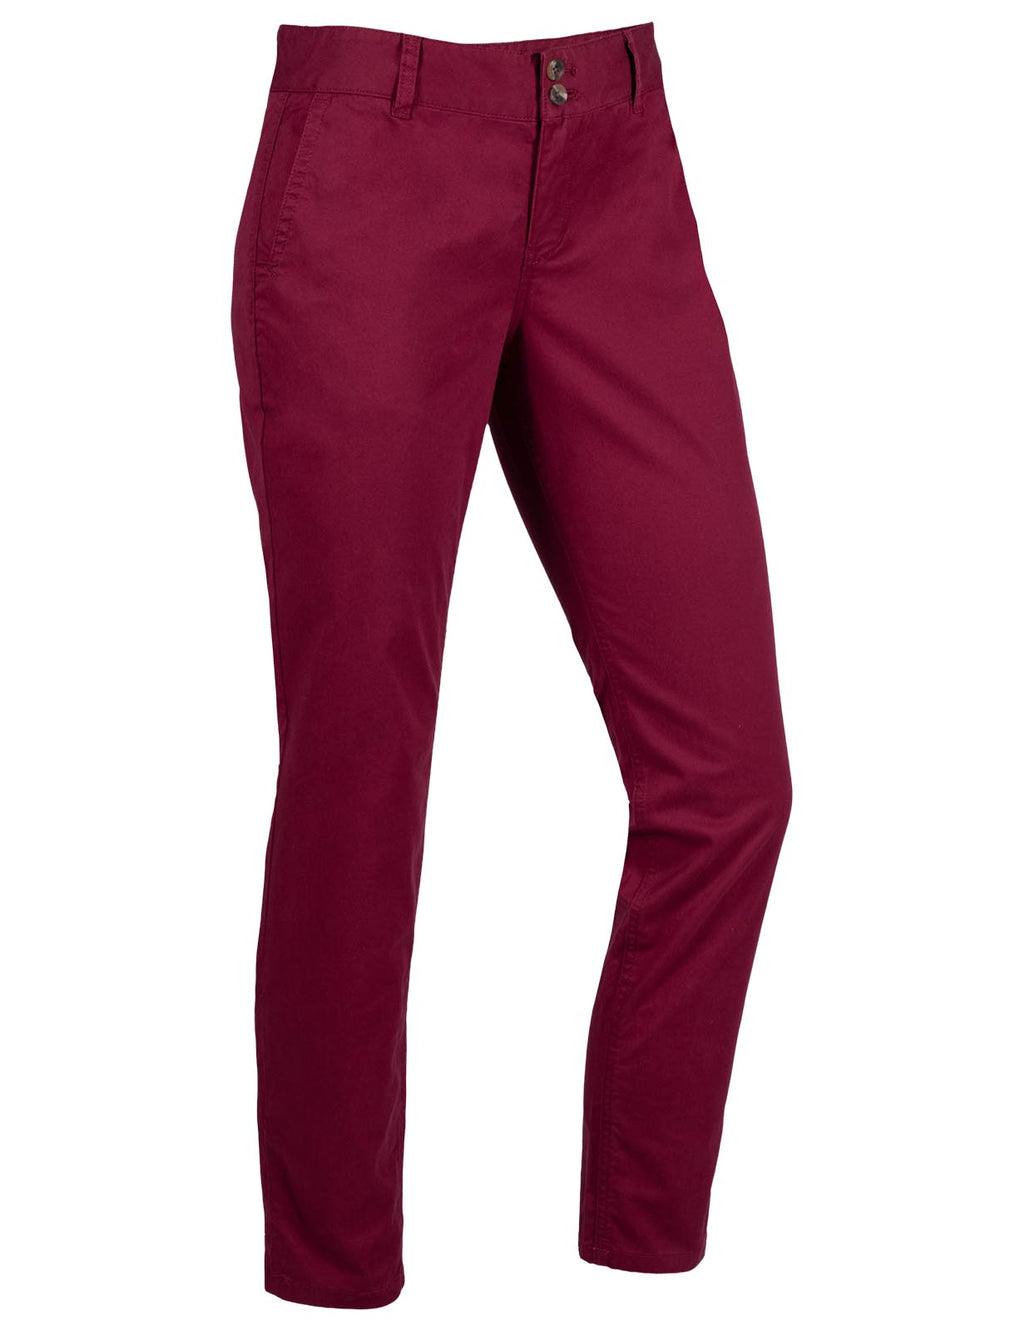 Women's Sadie Skinny Chino Pant | Classic Fit / Raisin